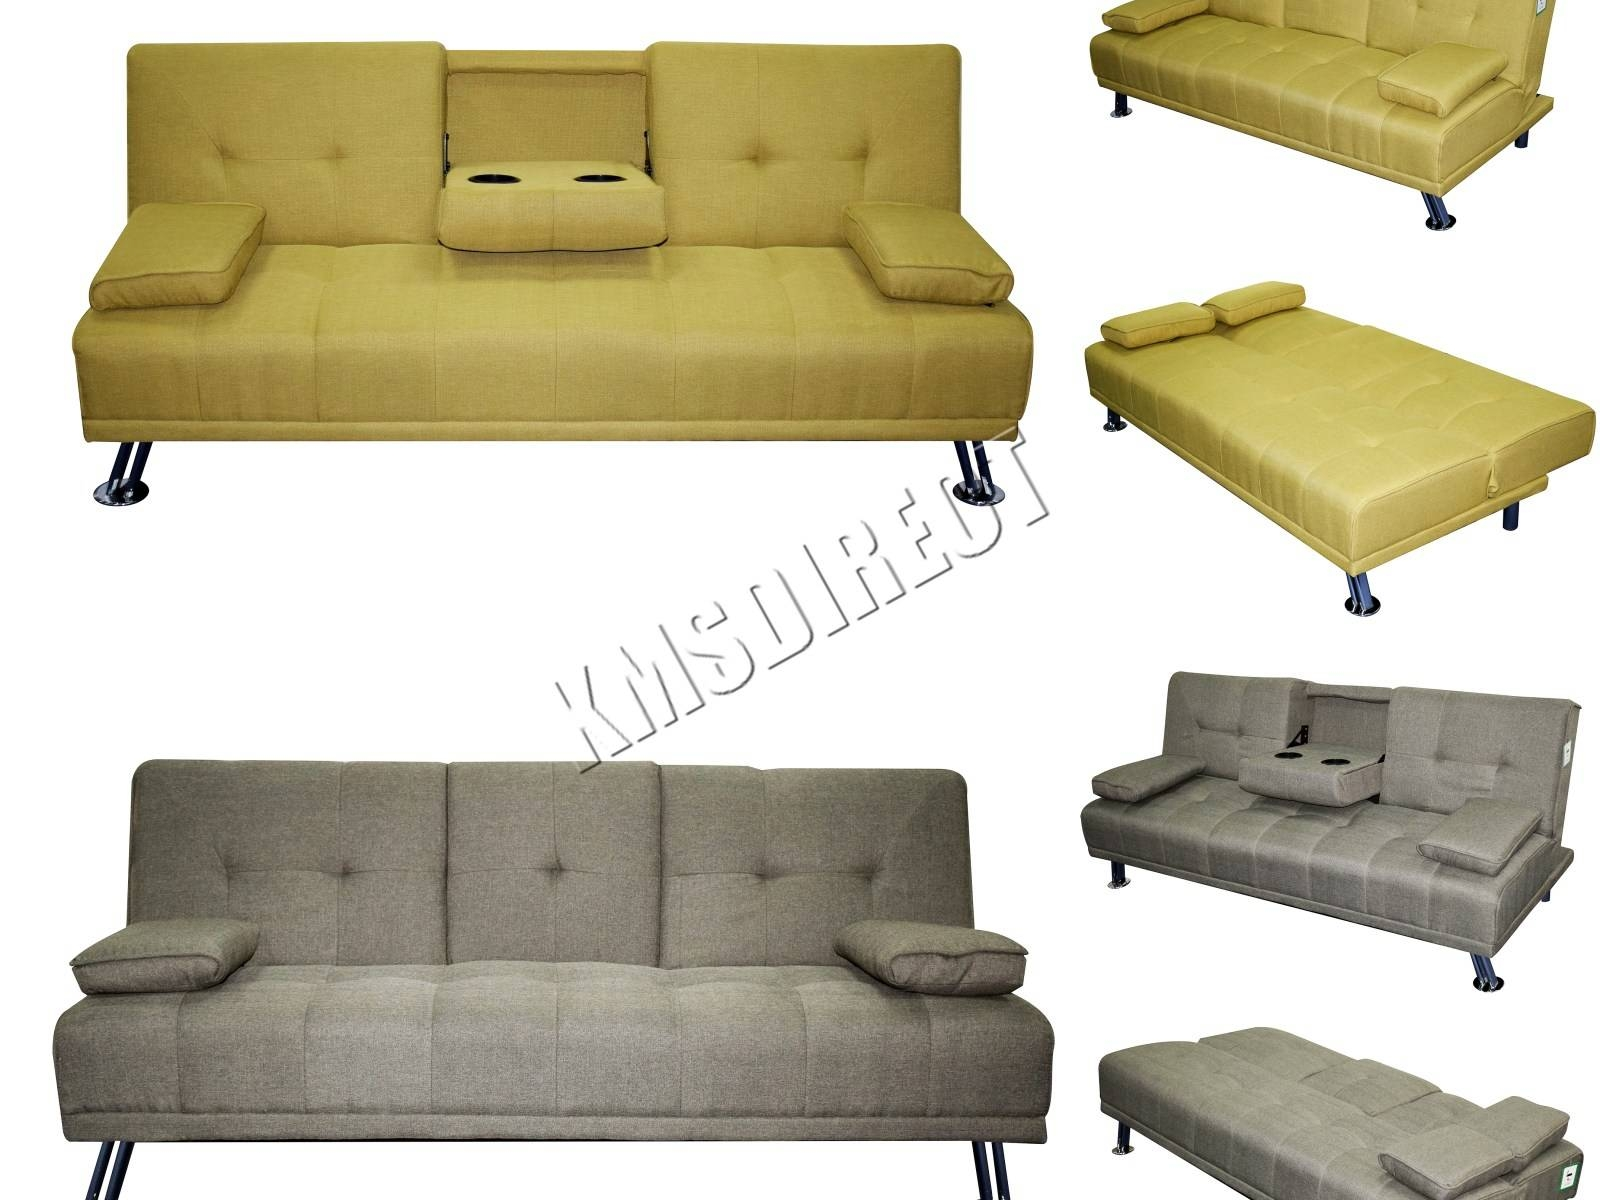 Sofas Center : Stylish Sleeper Sofas That Are Easy On The Eyes And intended for Luxury Sofa Beds (Image 27 of 30)